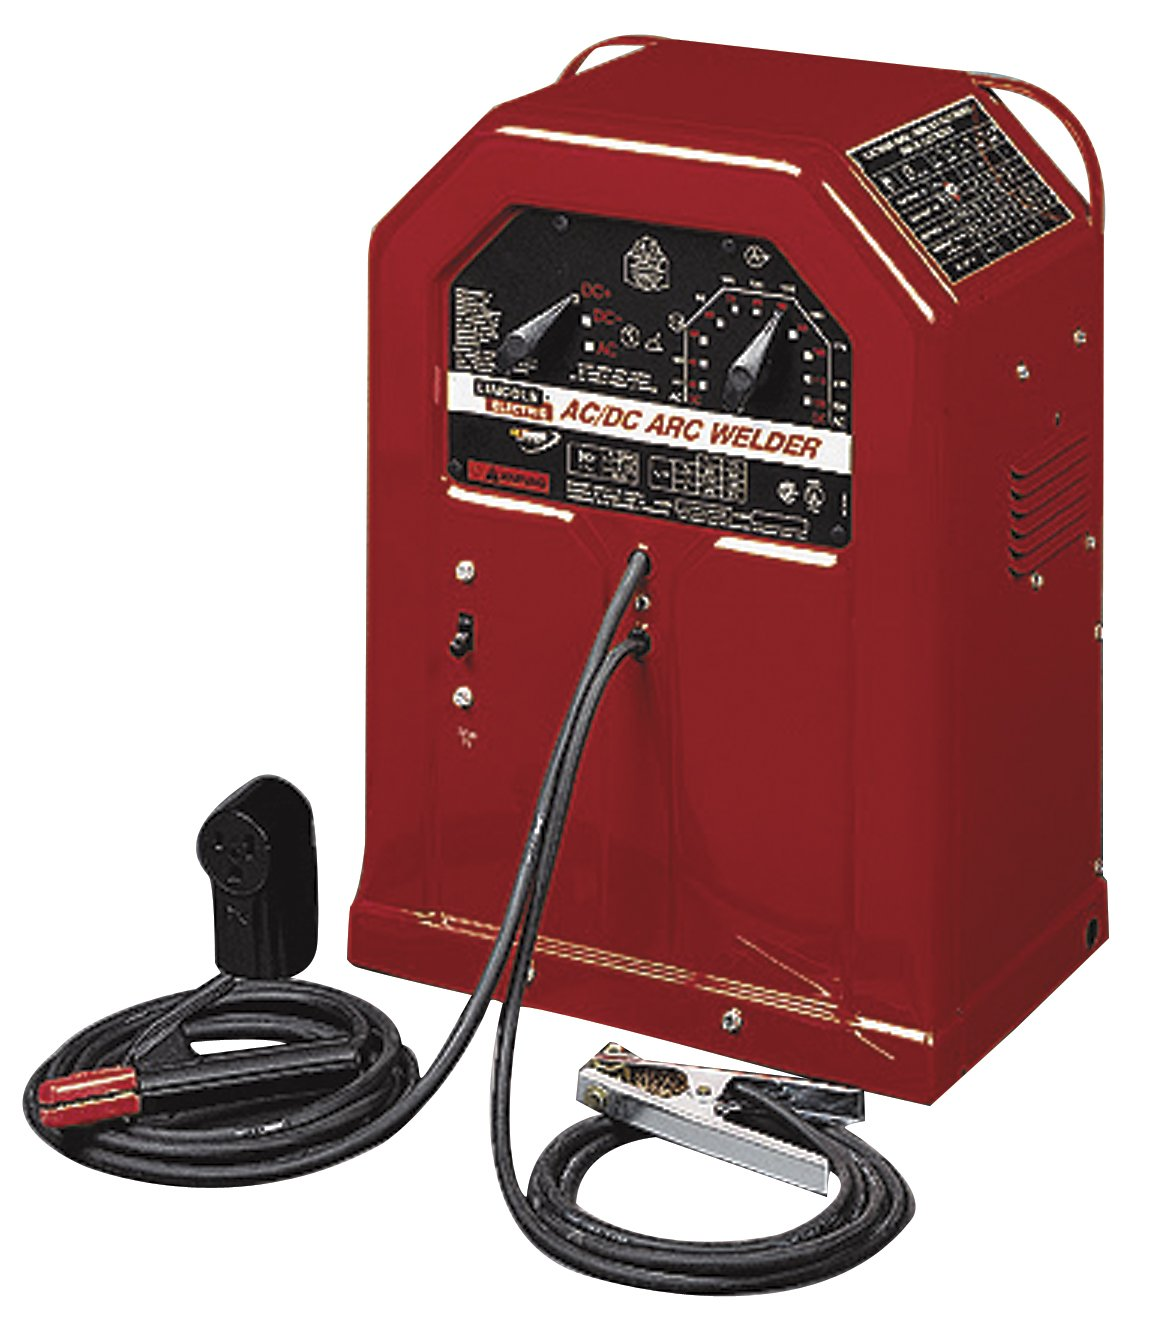 Lincoln Electric K1297 AC/DC 225/125 Arc Welder: Amazon.es: Bricolaje y herramientas